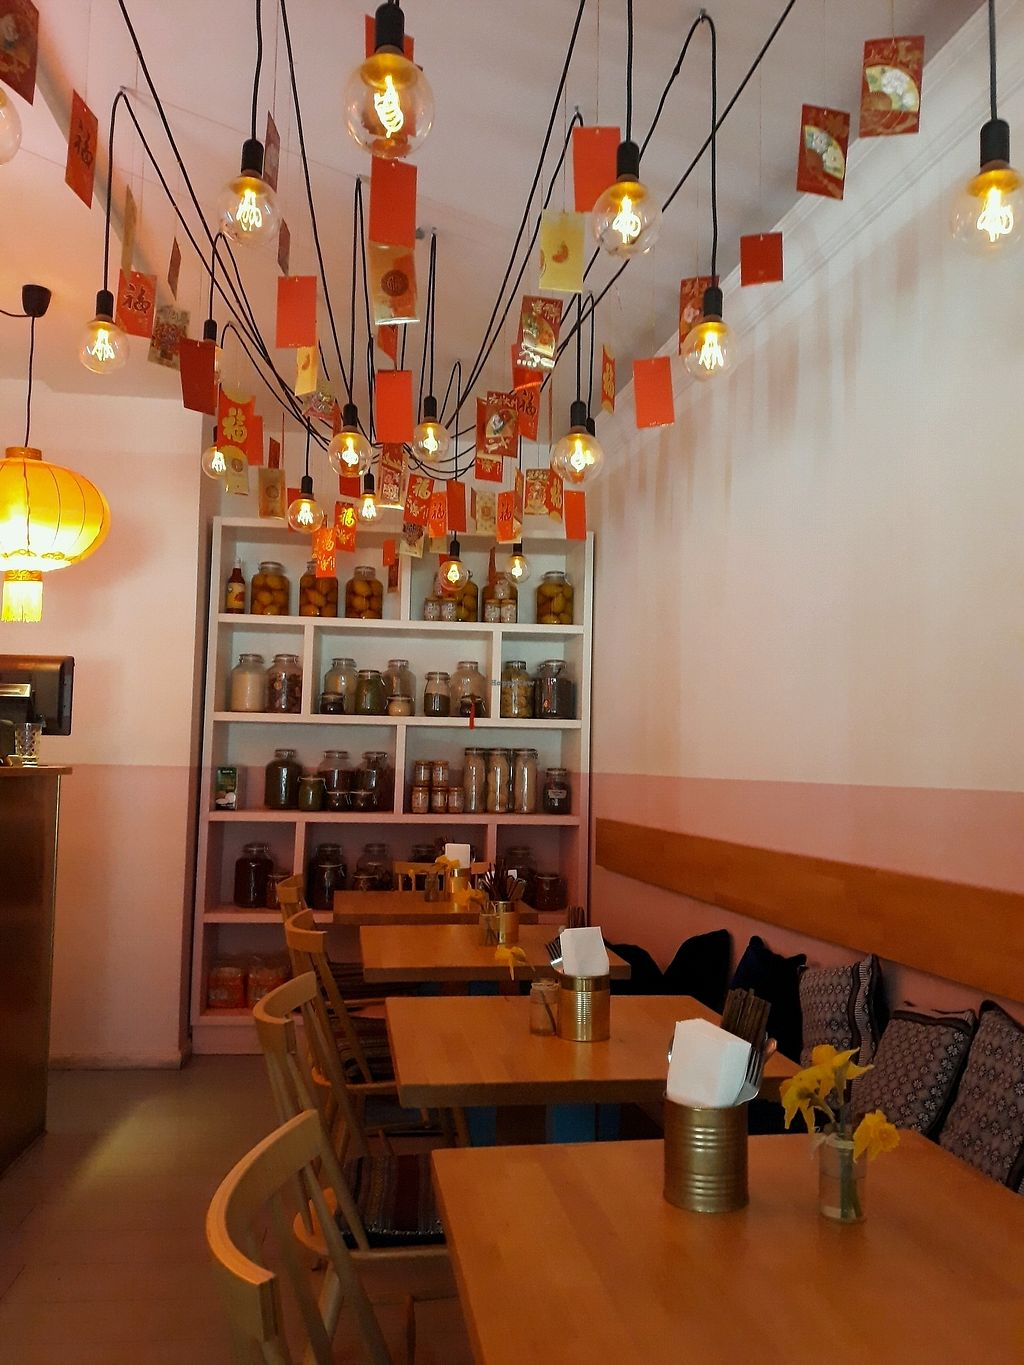 """Photo of +84 Asian Restaurant  by <a href=""""/members/profile/HannaStra%C3%9Fburger"""">HannaStraßburger</a> <br/>Cozy place <br/> April 8, 2018  - <a href='/contact/abuse/image/96619/382294'>Report</a>"""